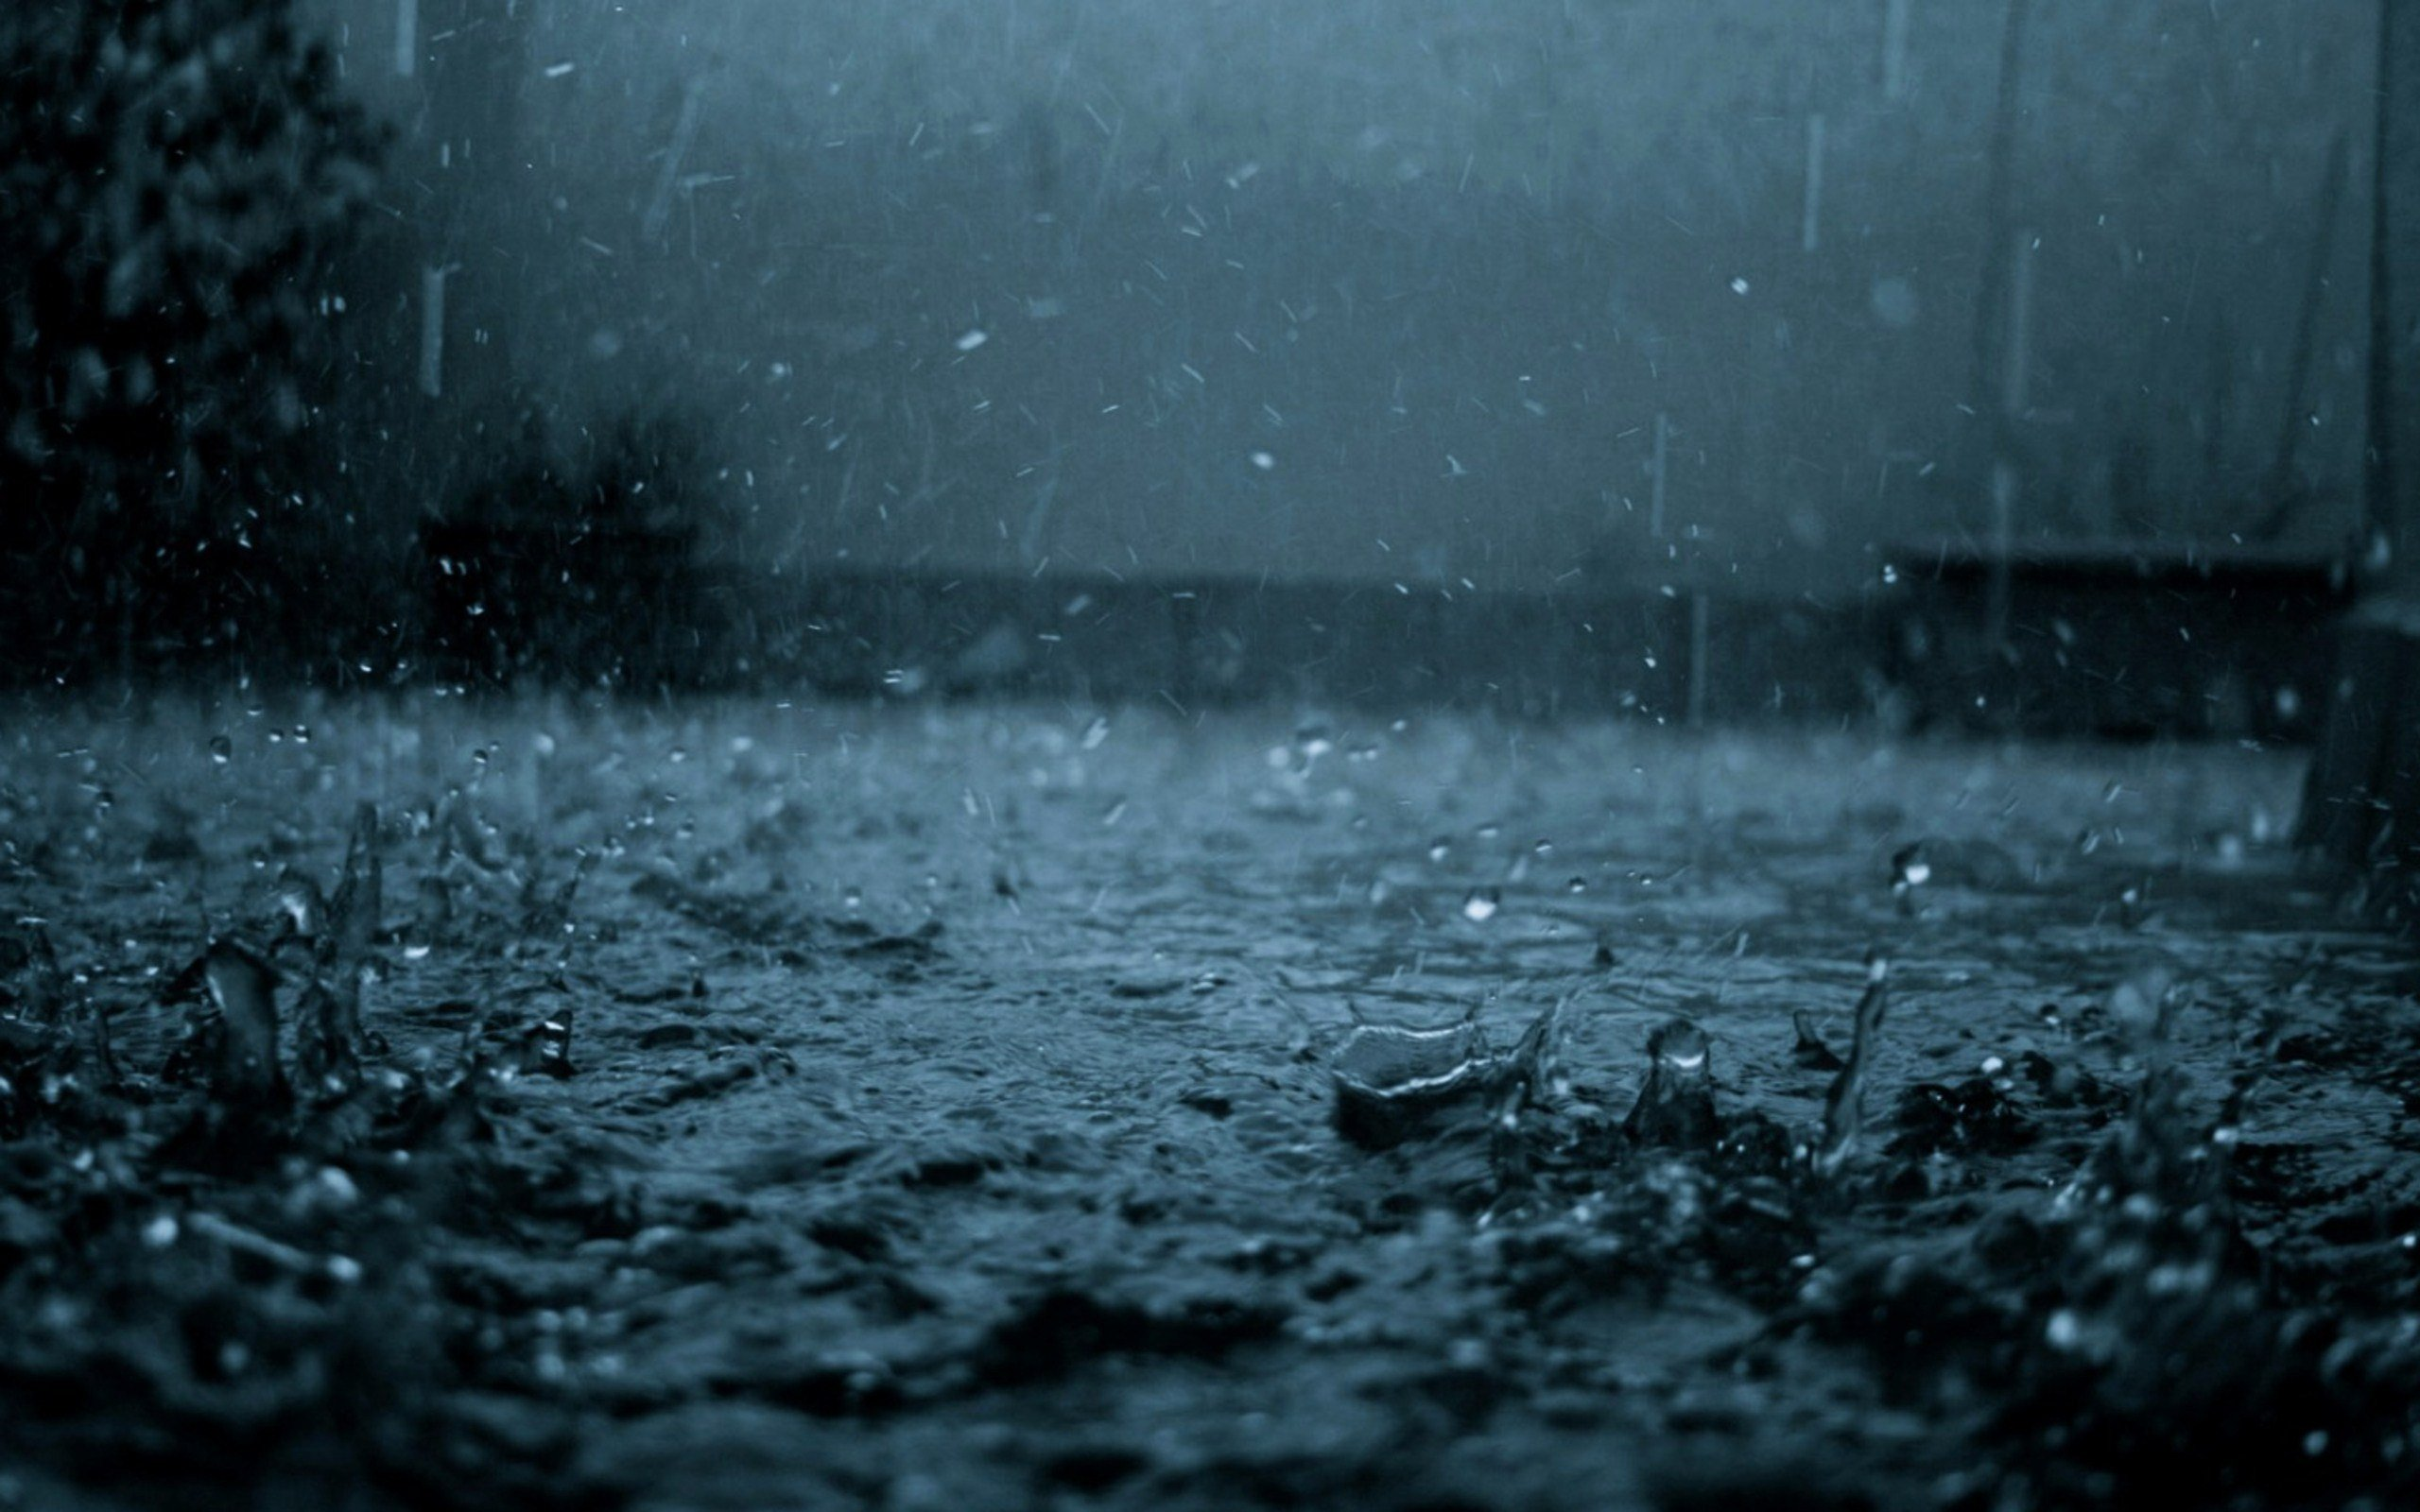 Wallpaper Of Rain